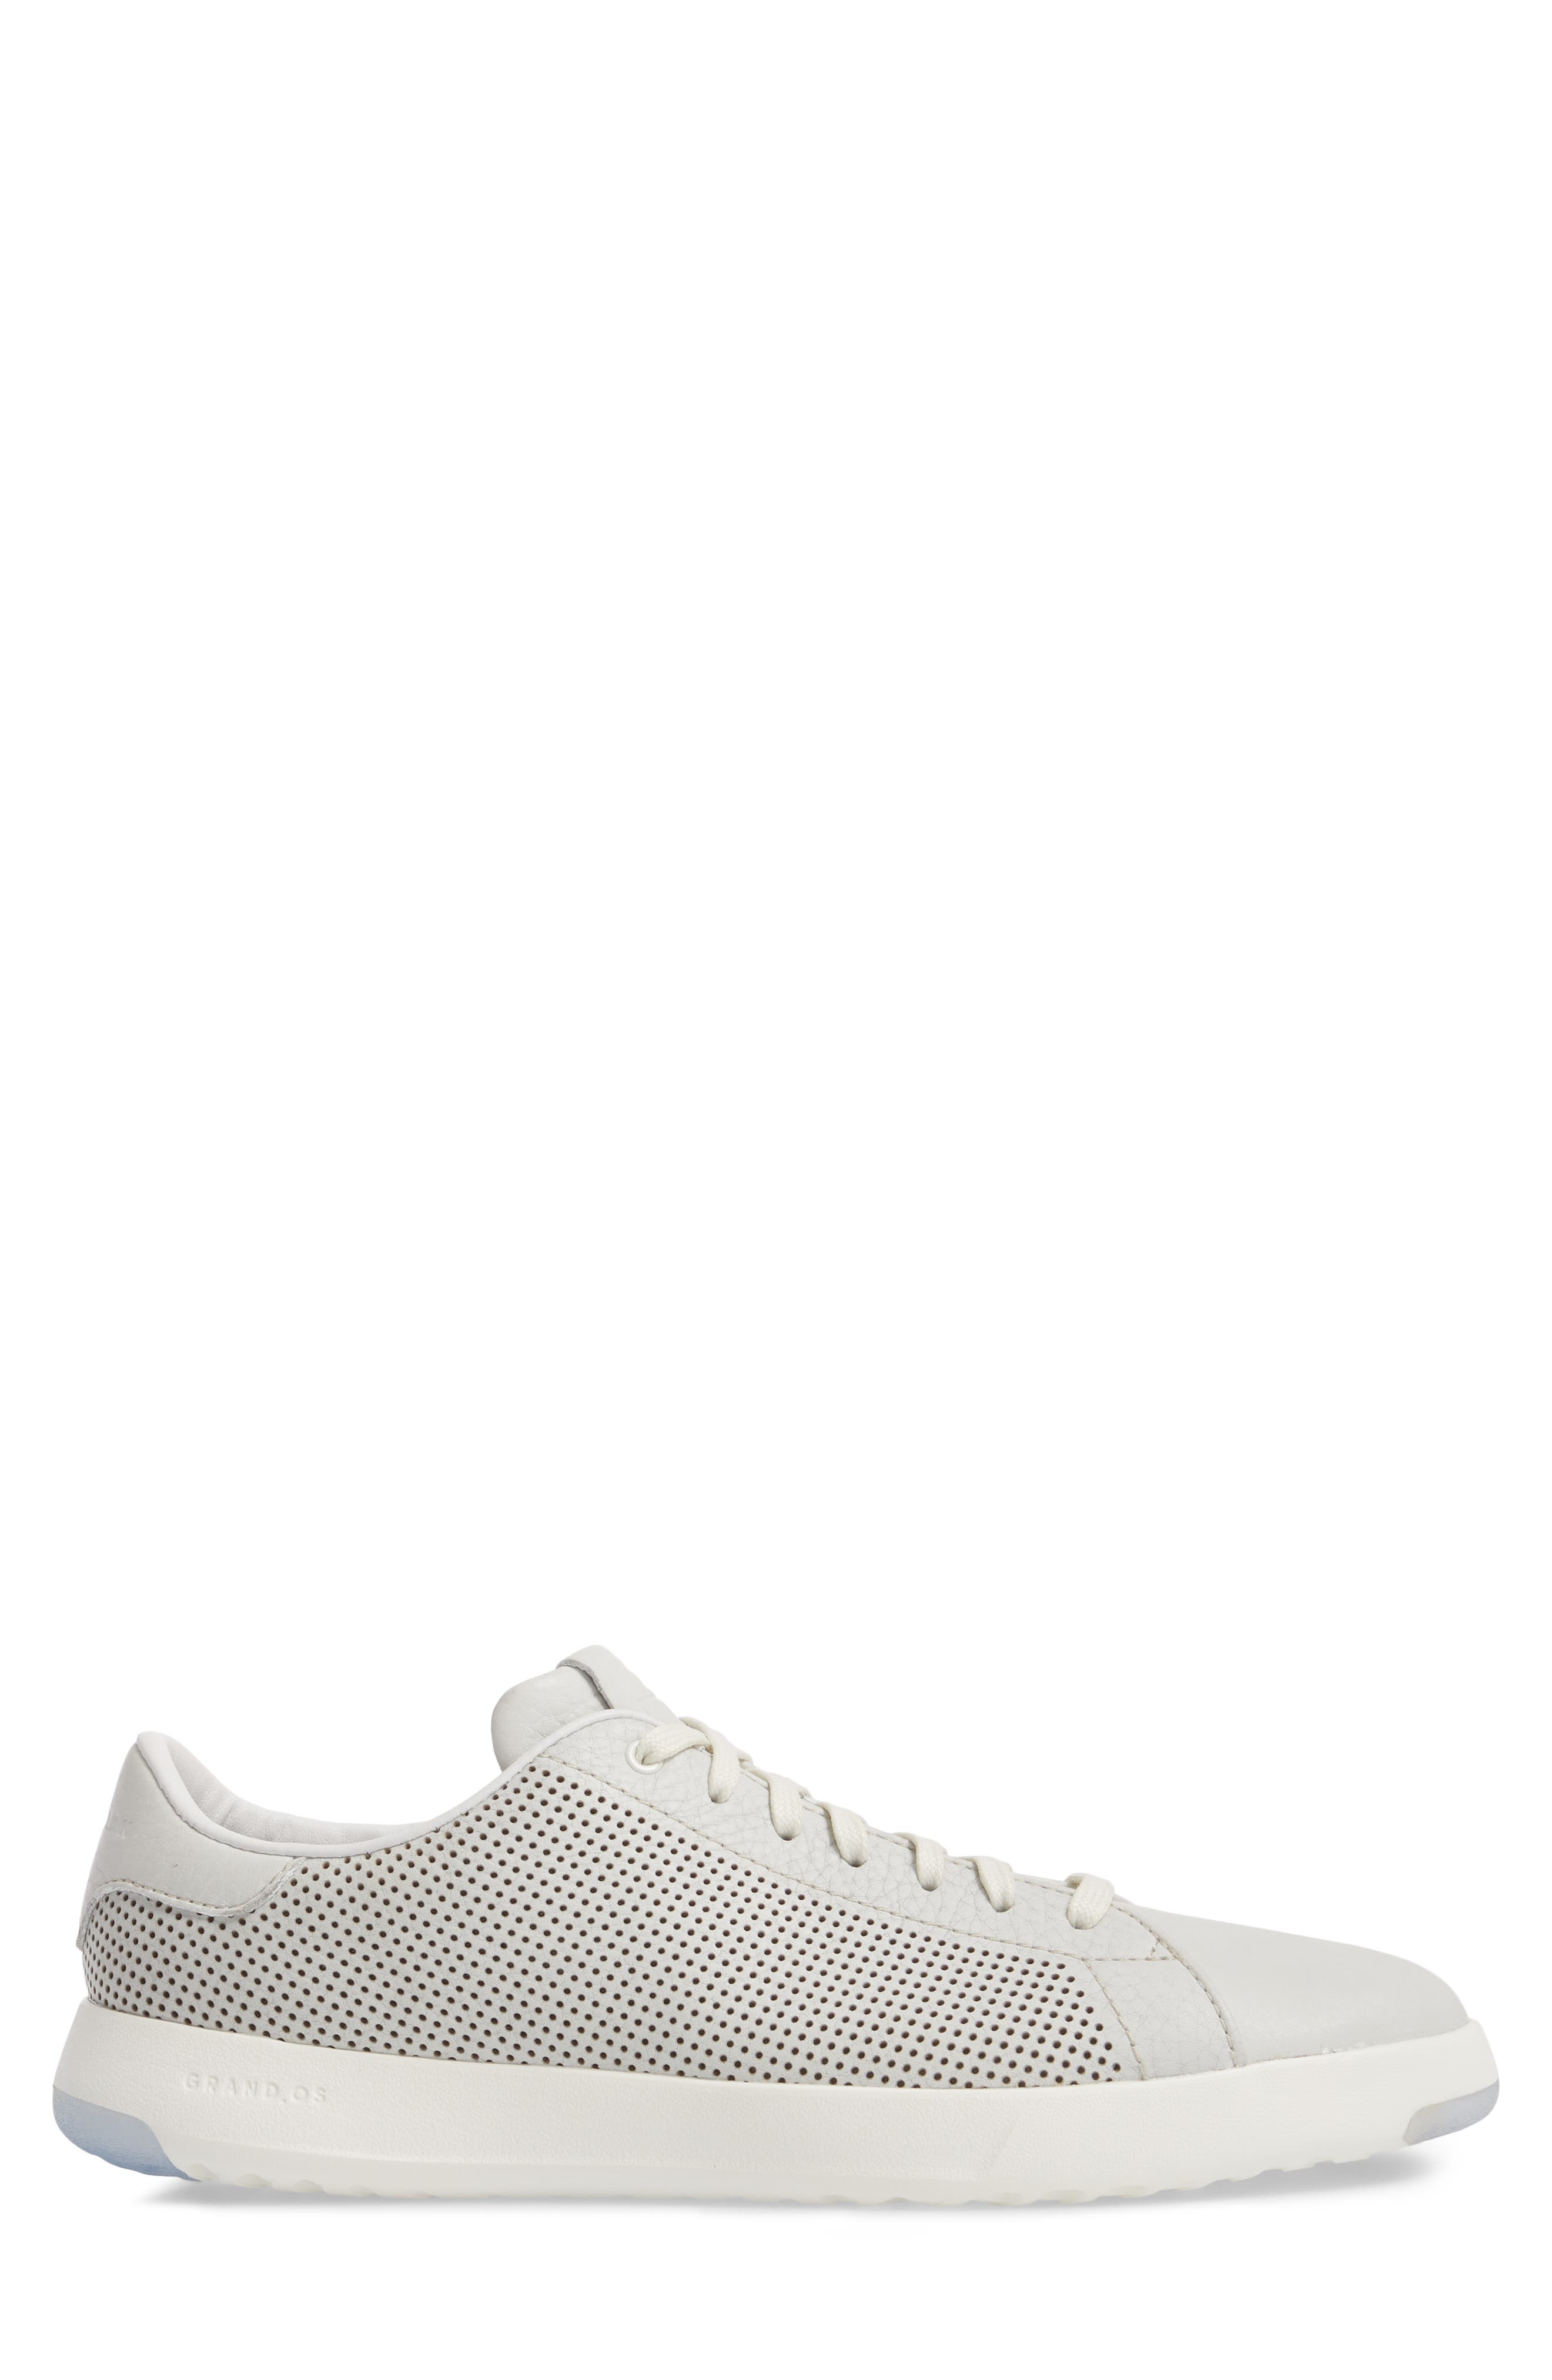 GrandPrø Perforated Low Top Sneaker,                             Alternate thumbnail 3, color,                             WHITE TUM LEATHER